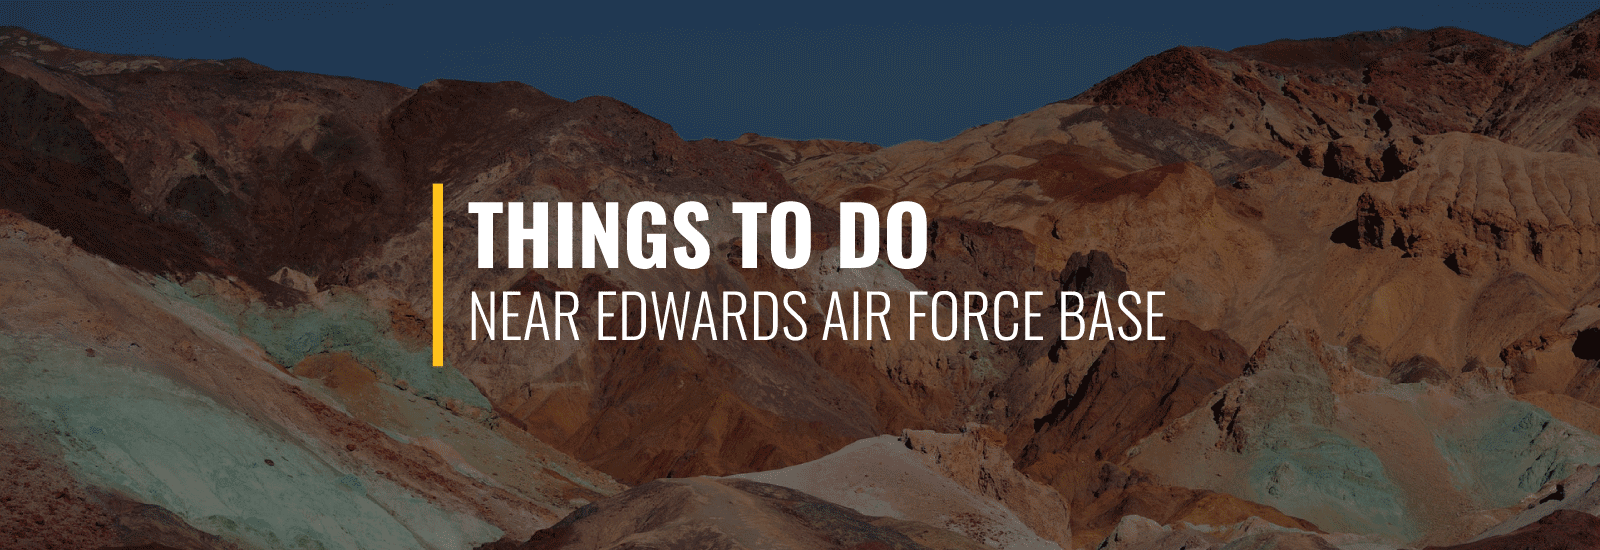 Things to Do Near Edwards Air Force Base